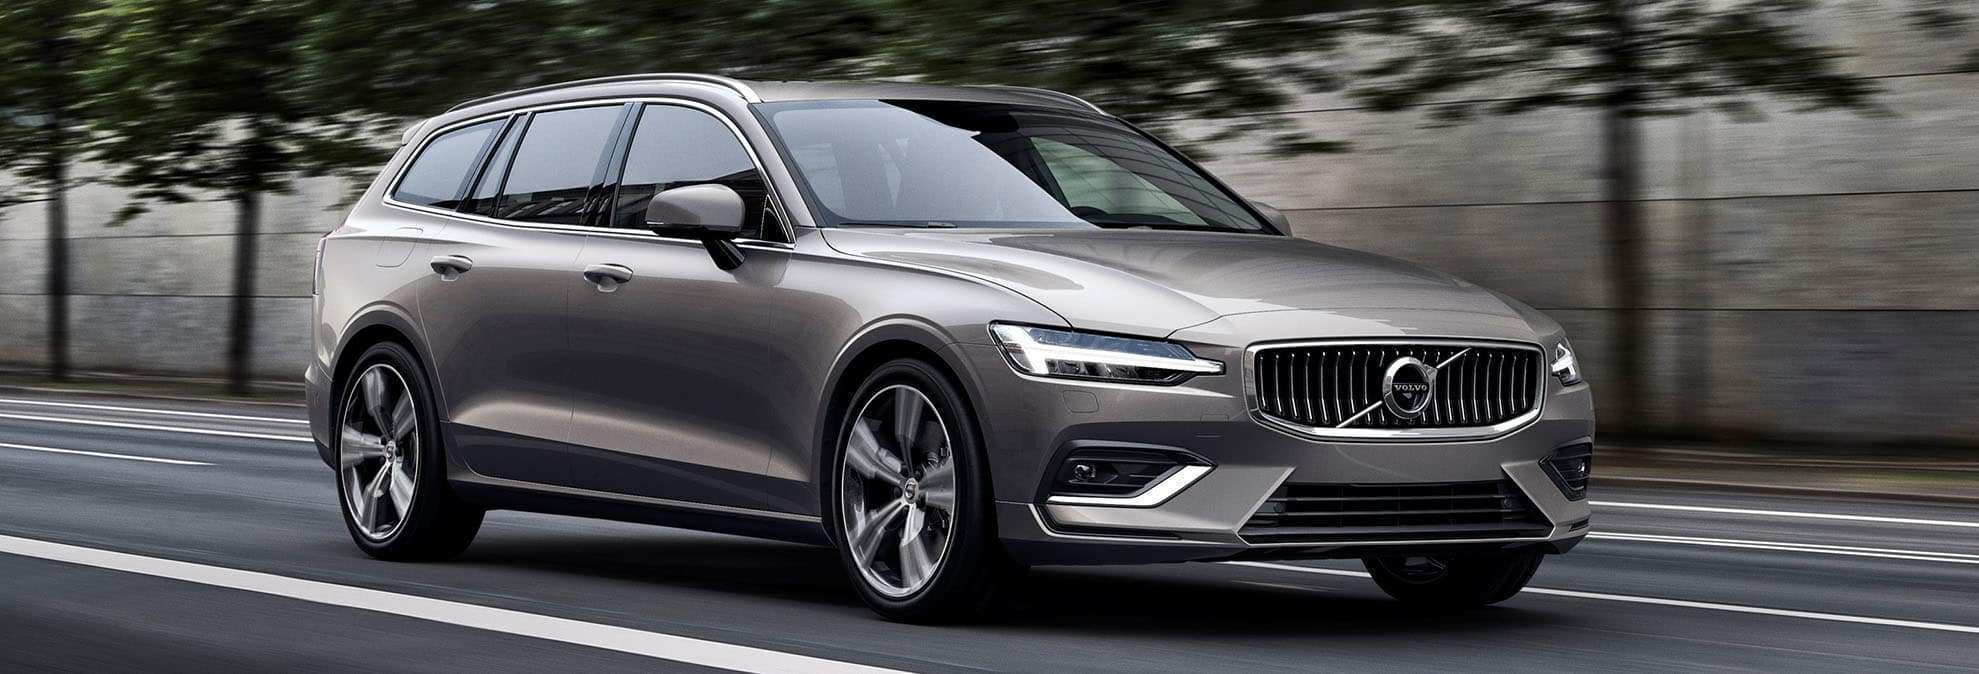 73 All New 2019 Volvo Wagon Spesification for 2019 Volvo Wagon